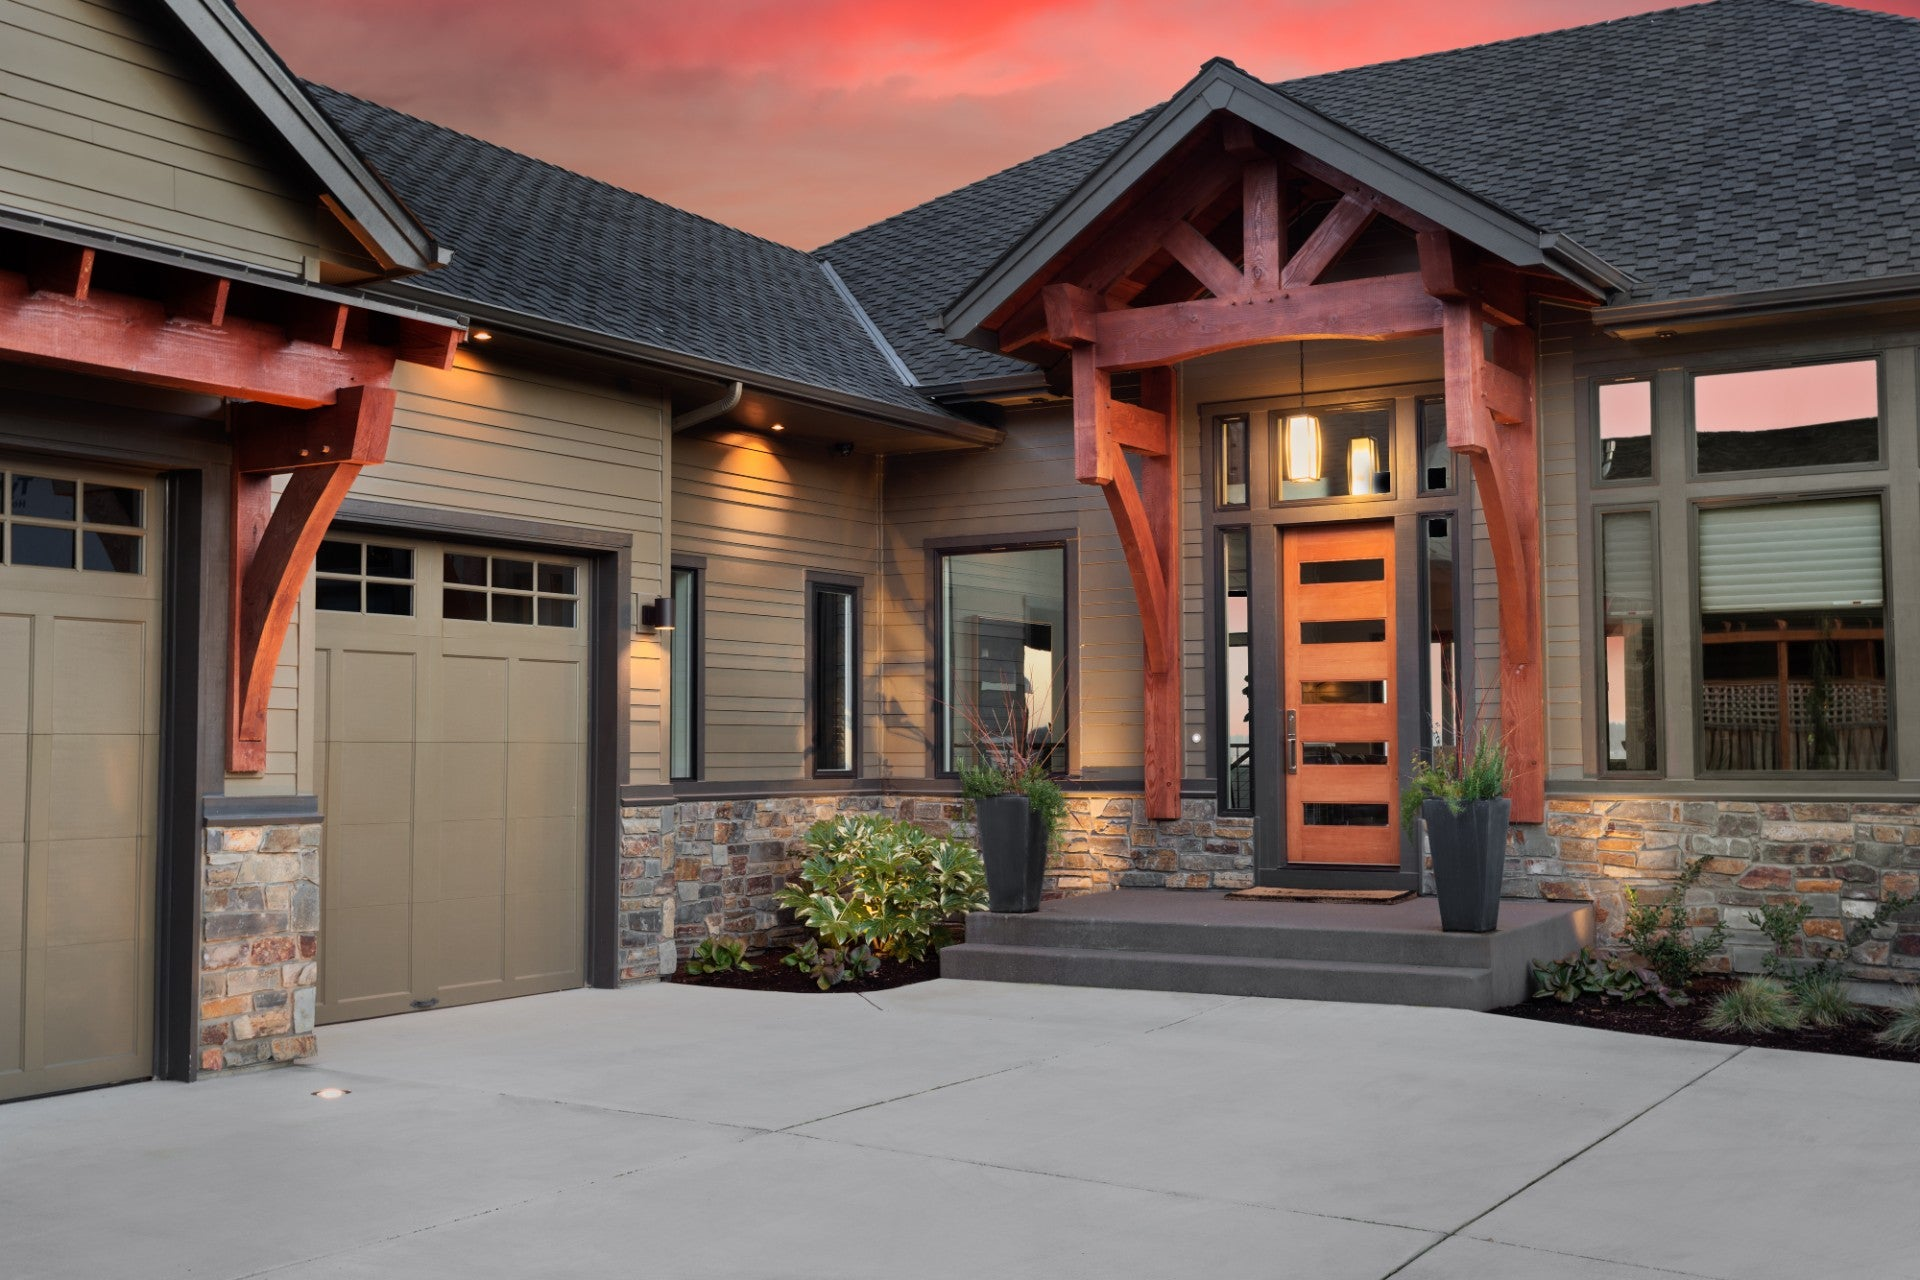 Craftsman Home with Wooden Build-Outs, Gray Roof - Roof and Gutter Replacement